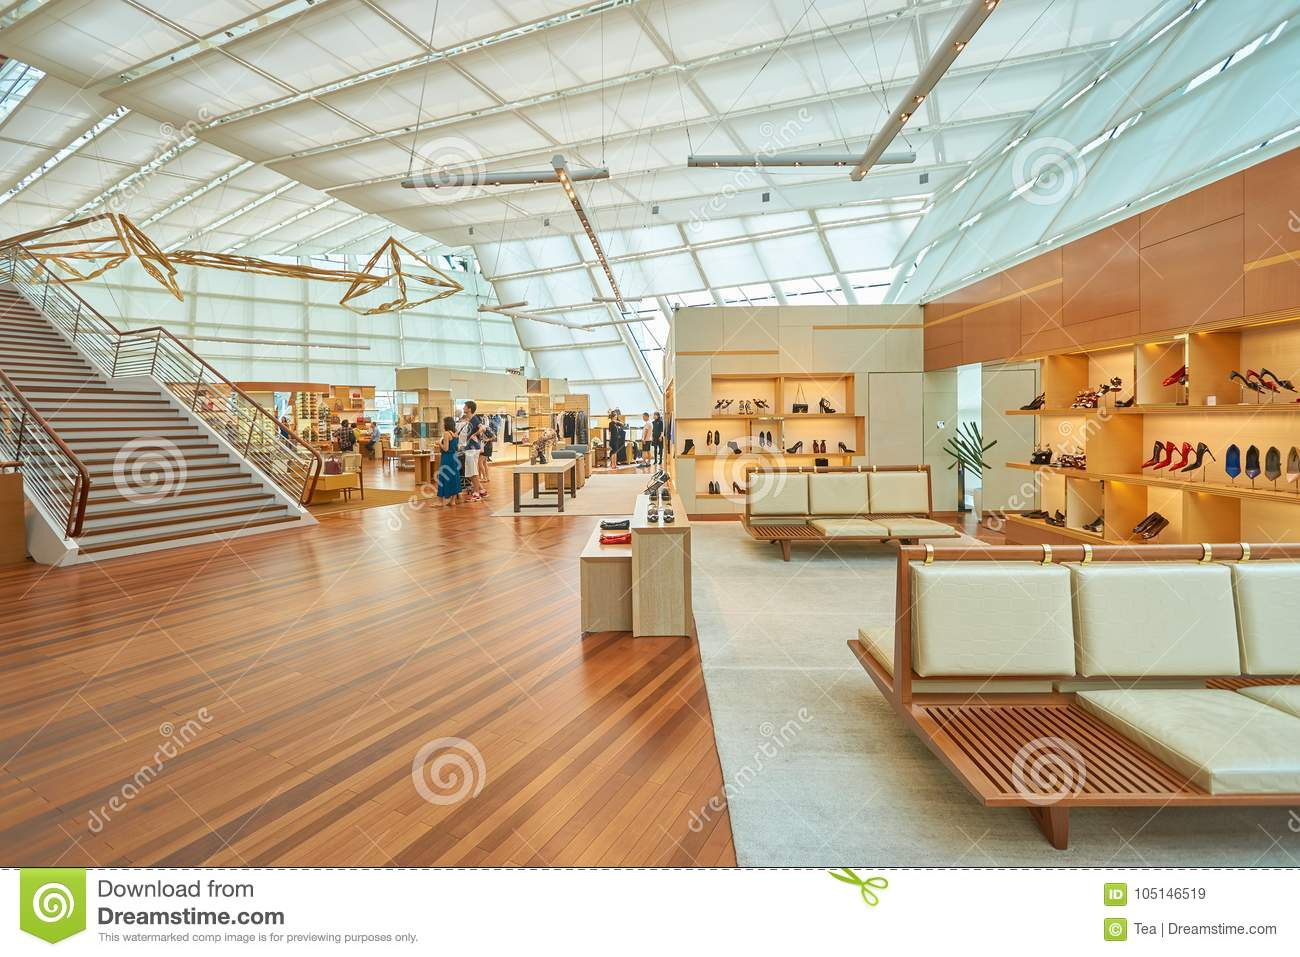 80c7c8b5e Louis Vuitton store editorial stock image. Image of outlet - 105146519